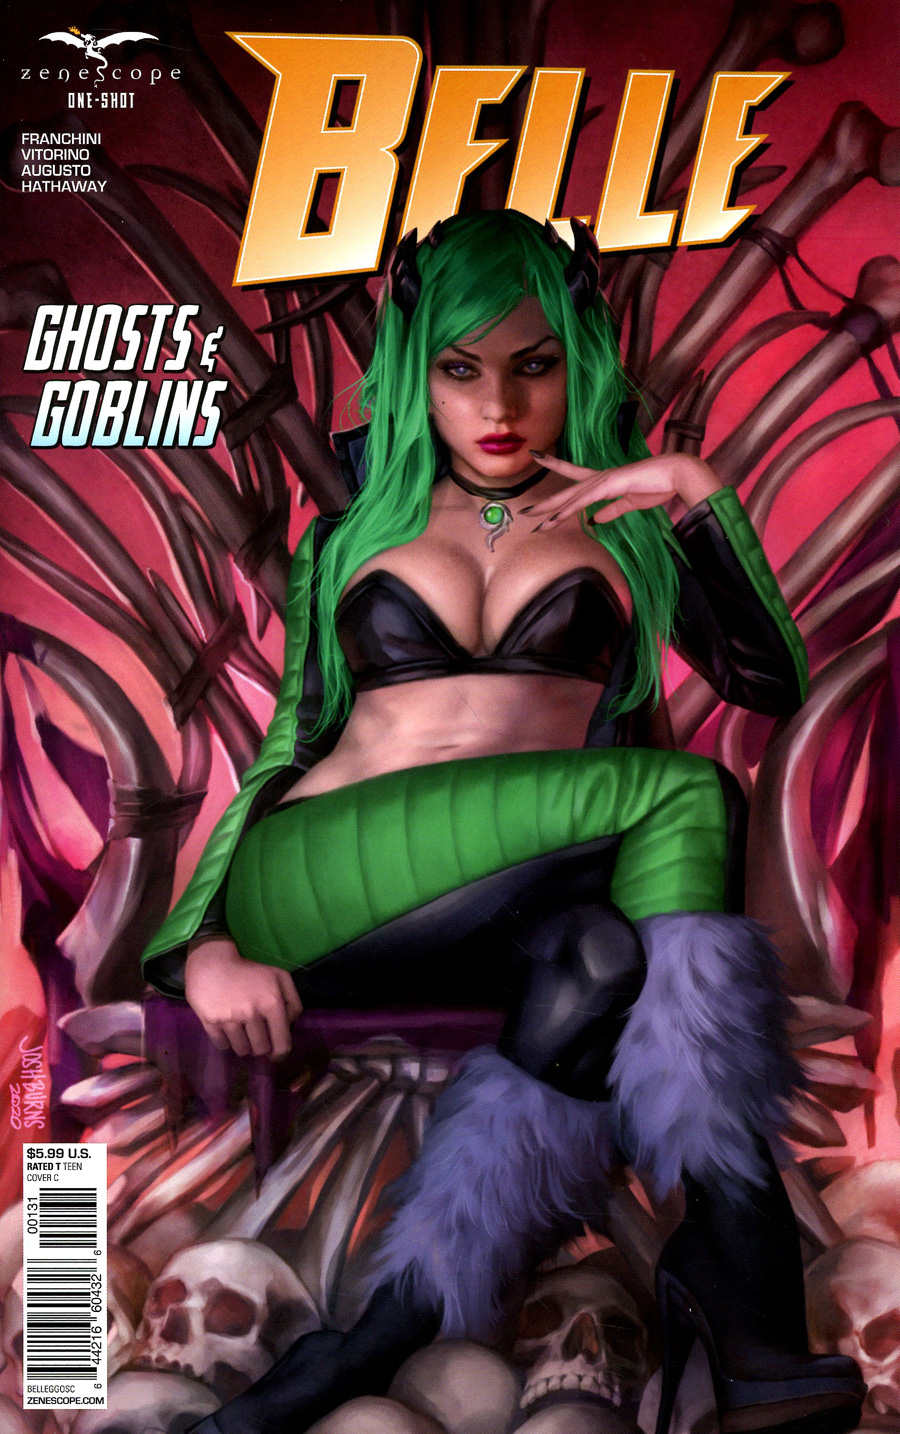 Grimm Fairy Tales Presents Belle Ghost And Goblins One Shot Cover C Josh Burns